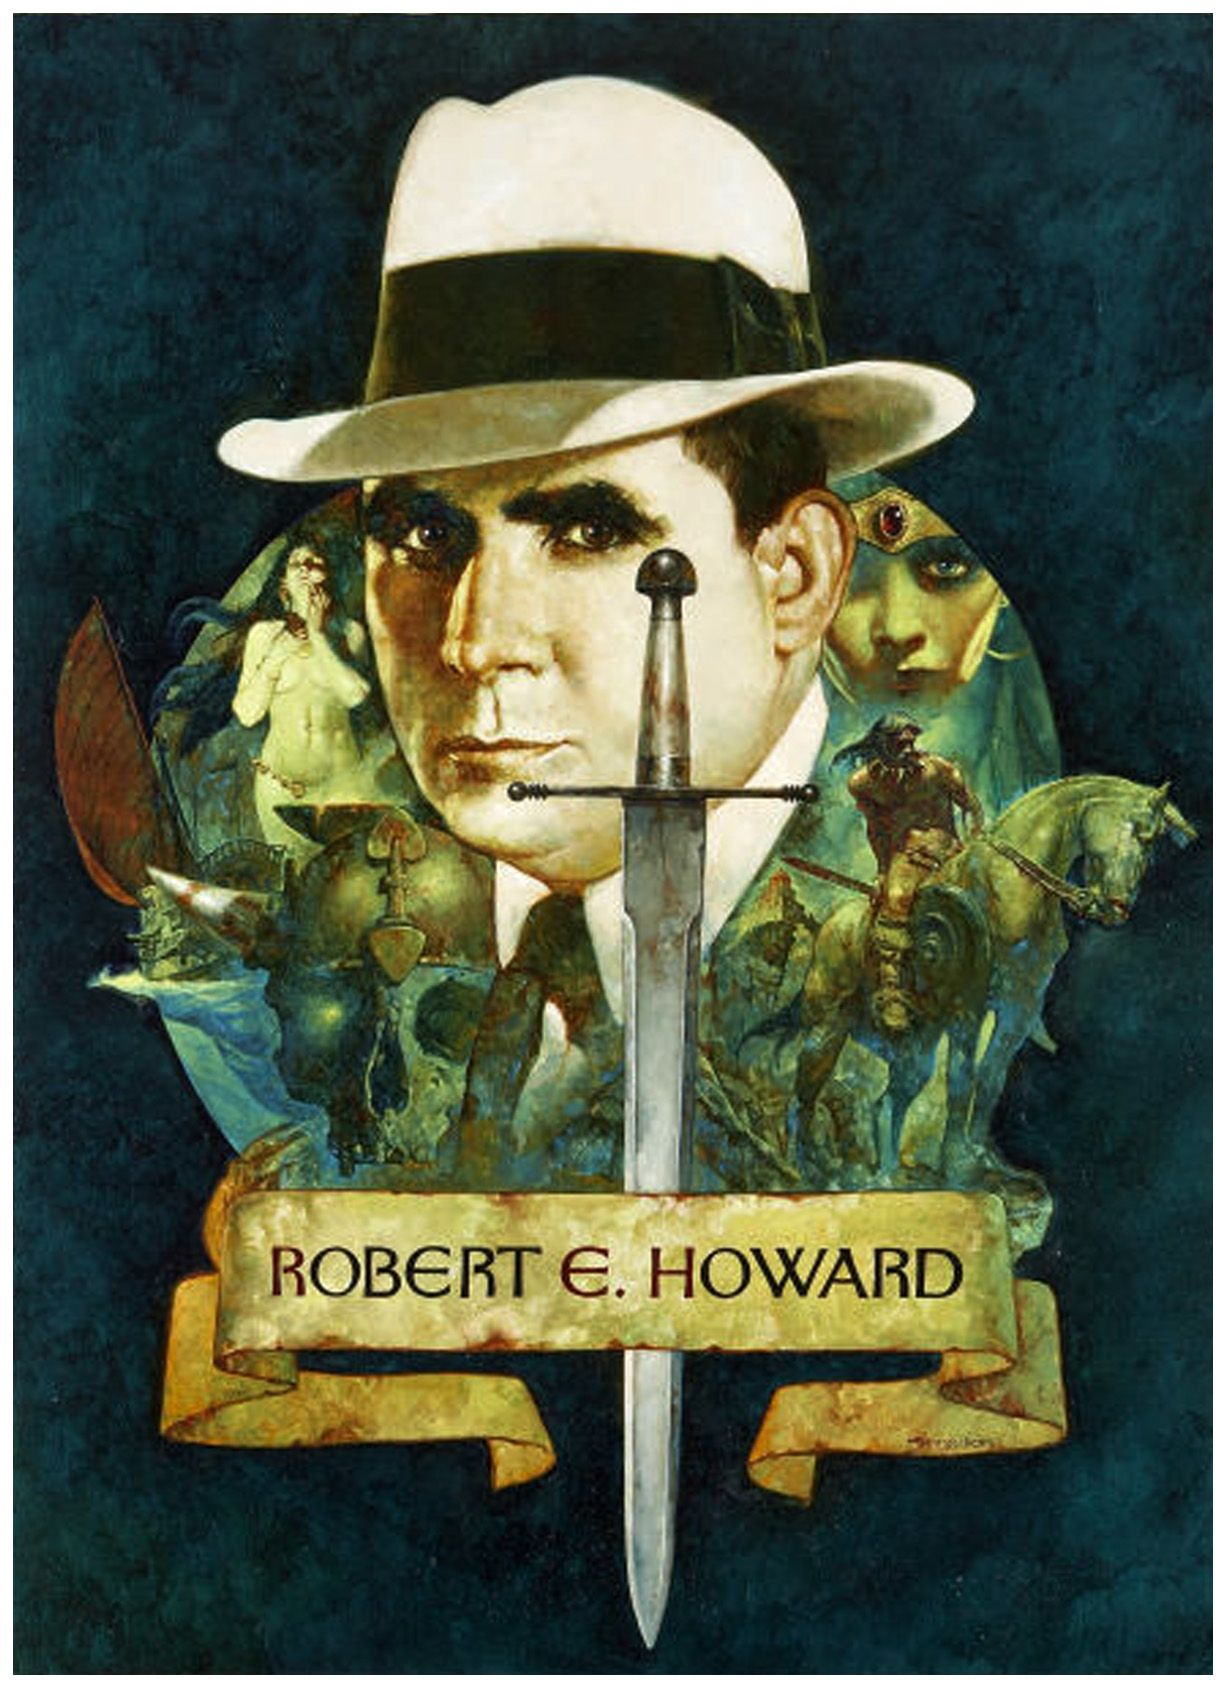 Image result for robert e. howard